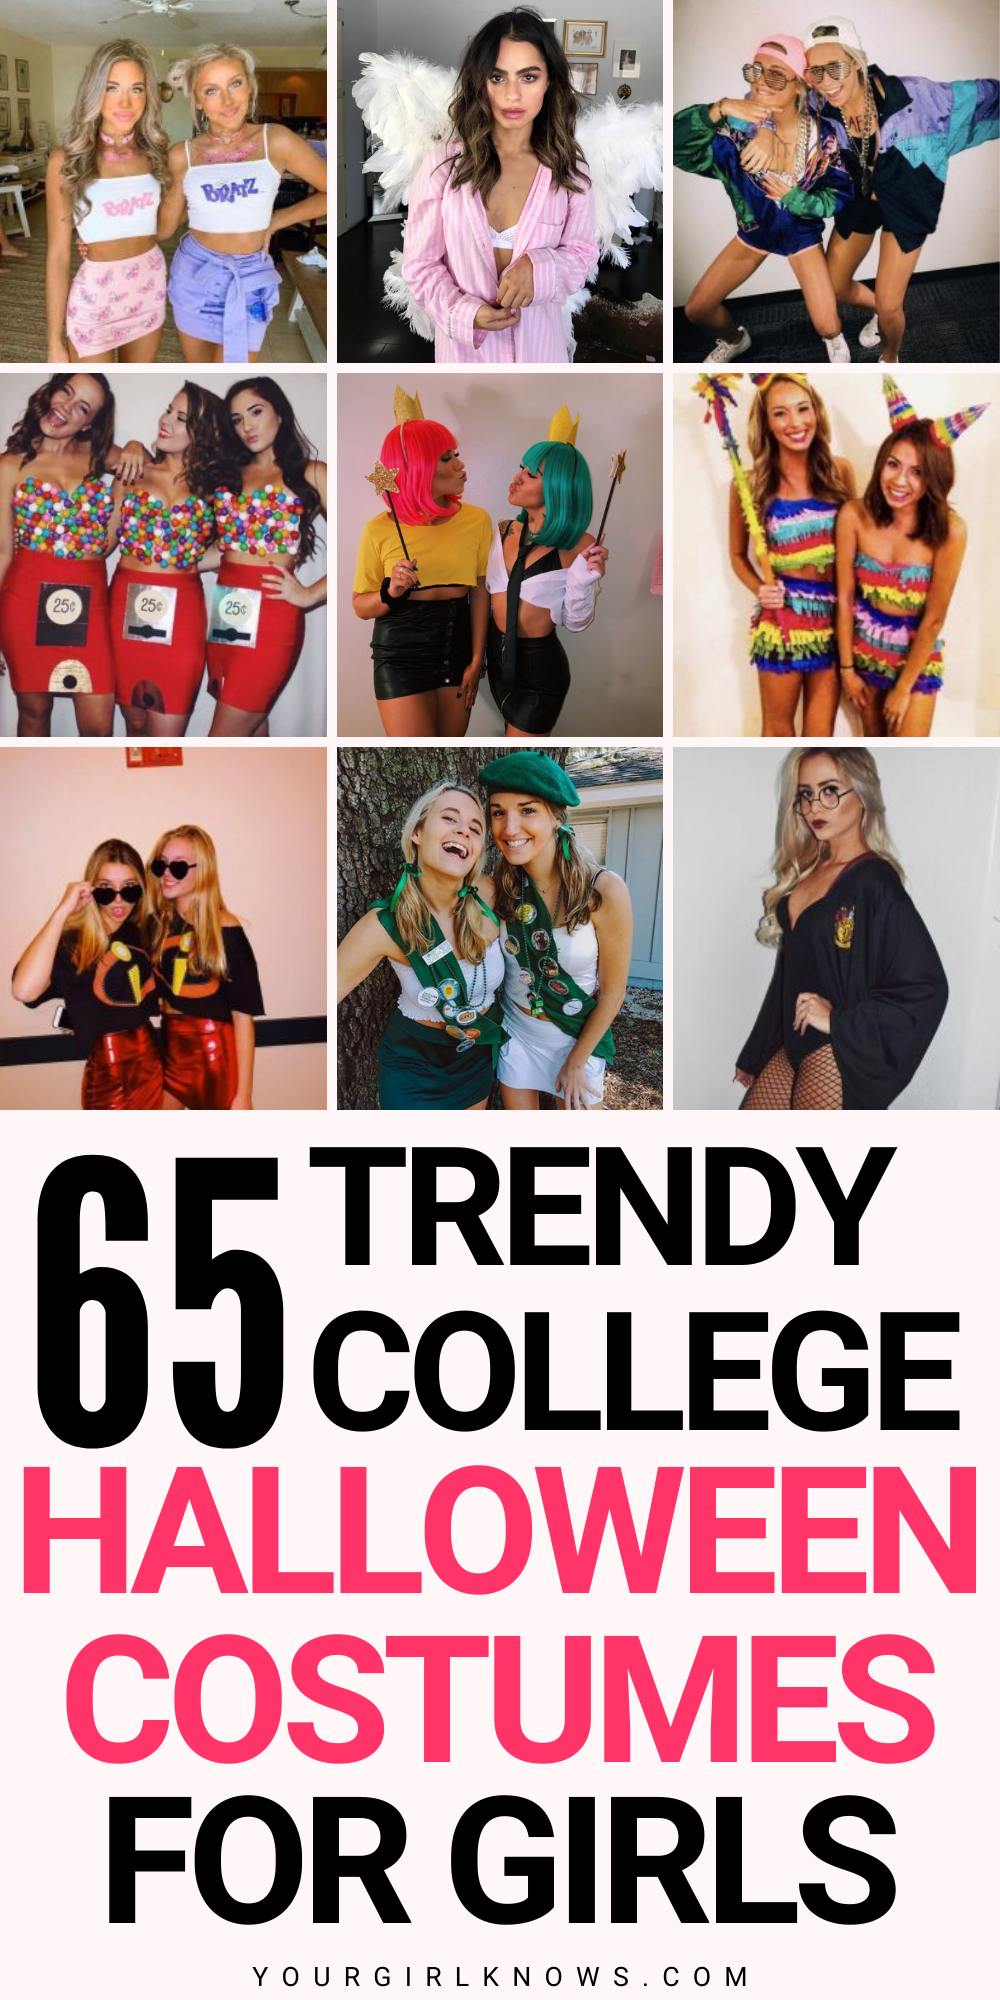 65 TRENDY COLLEGE HALLOWEEN COSTUMES FOR GIRLS THA